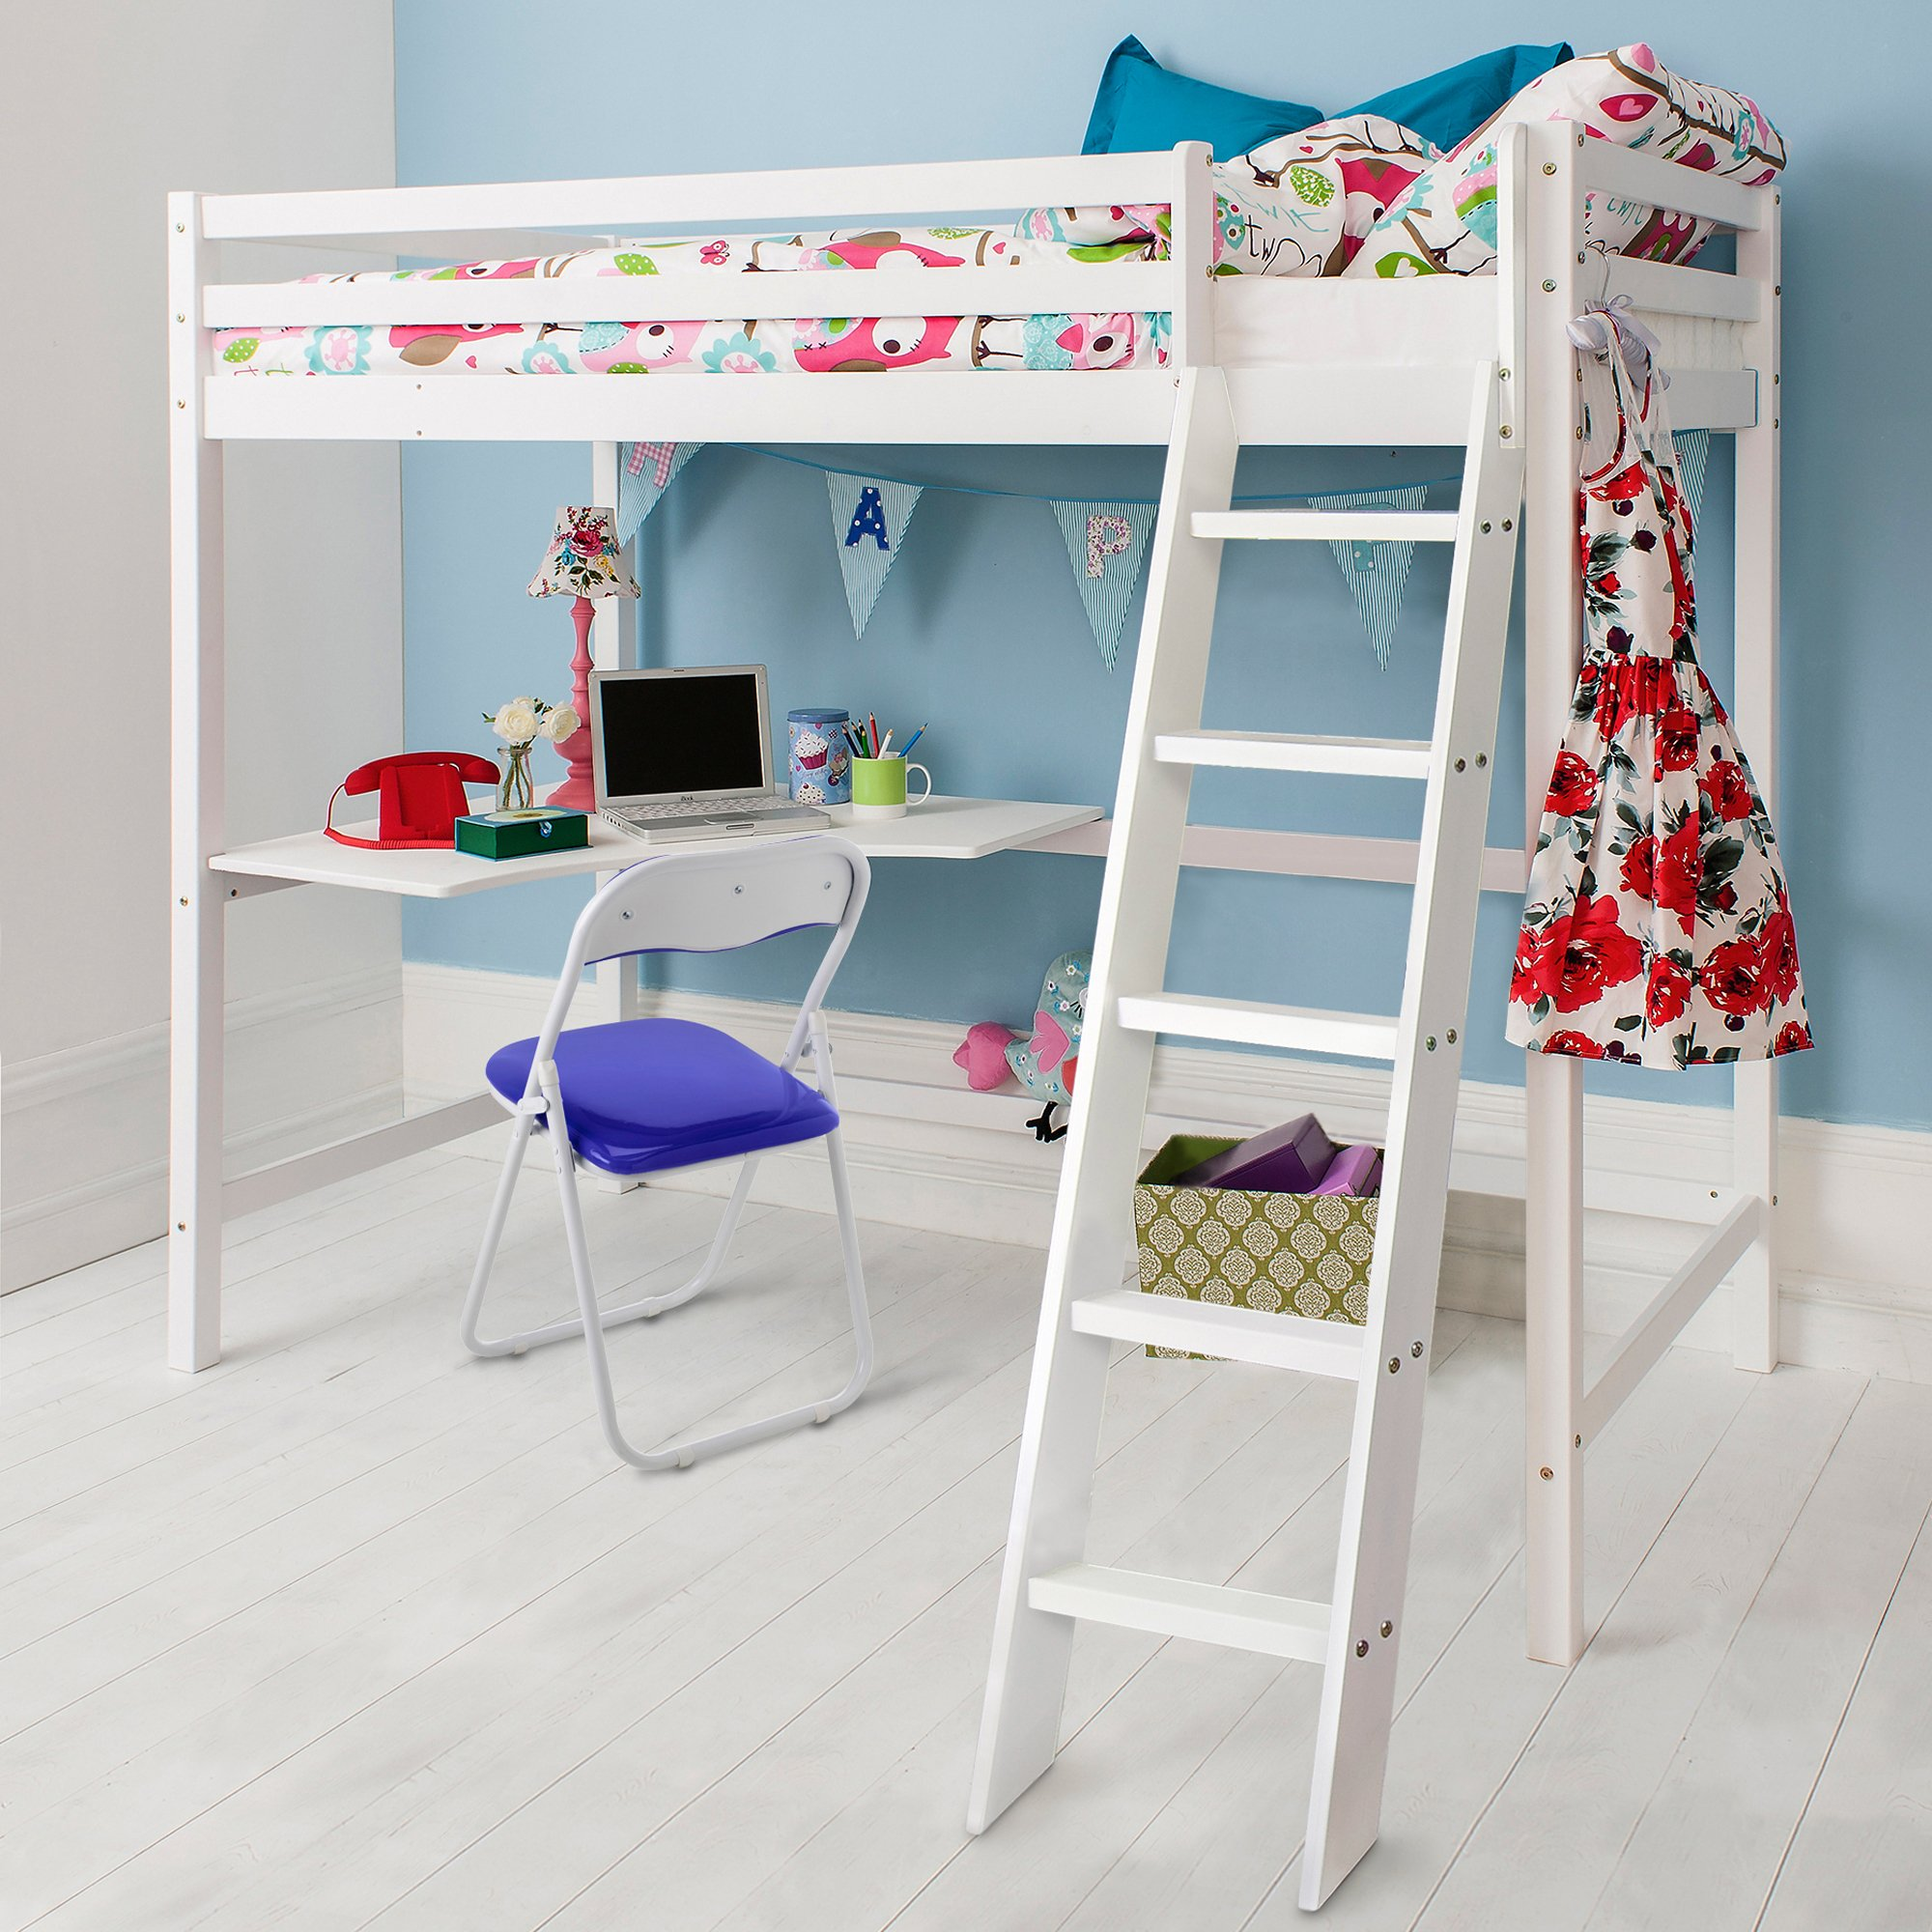 Cabin Bed High Sleeeper With Desk In WHITE Bunk